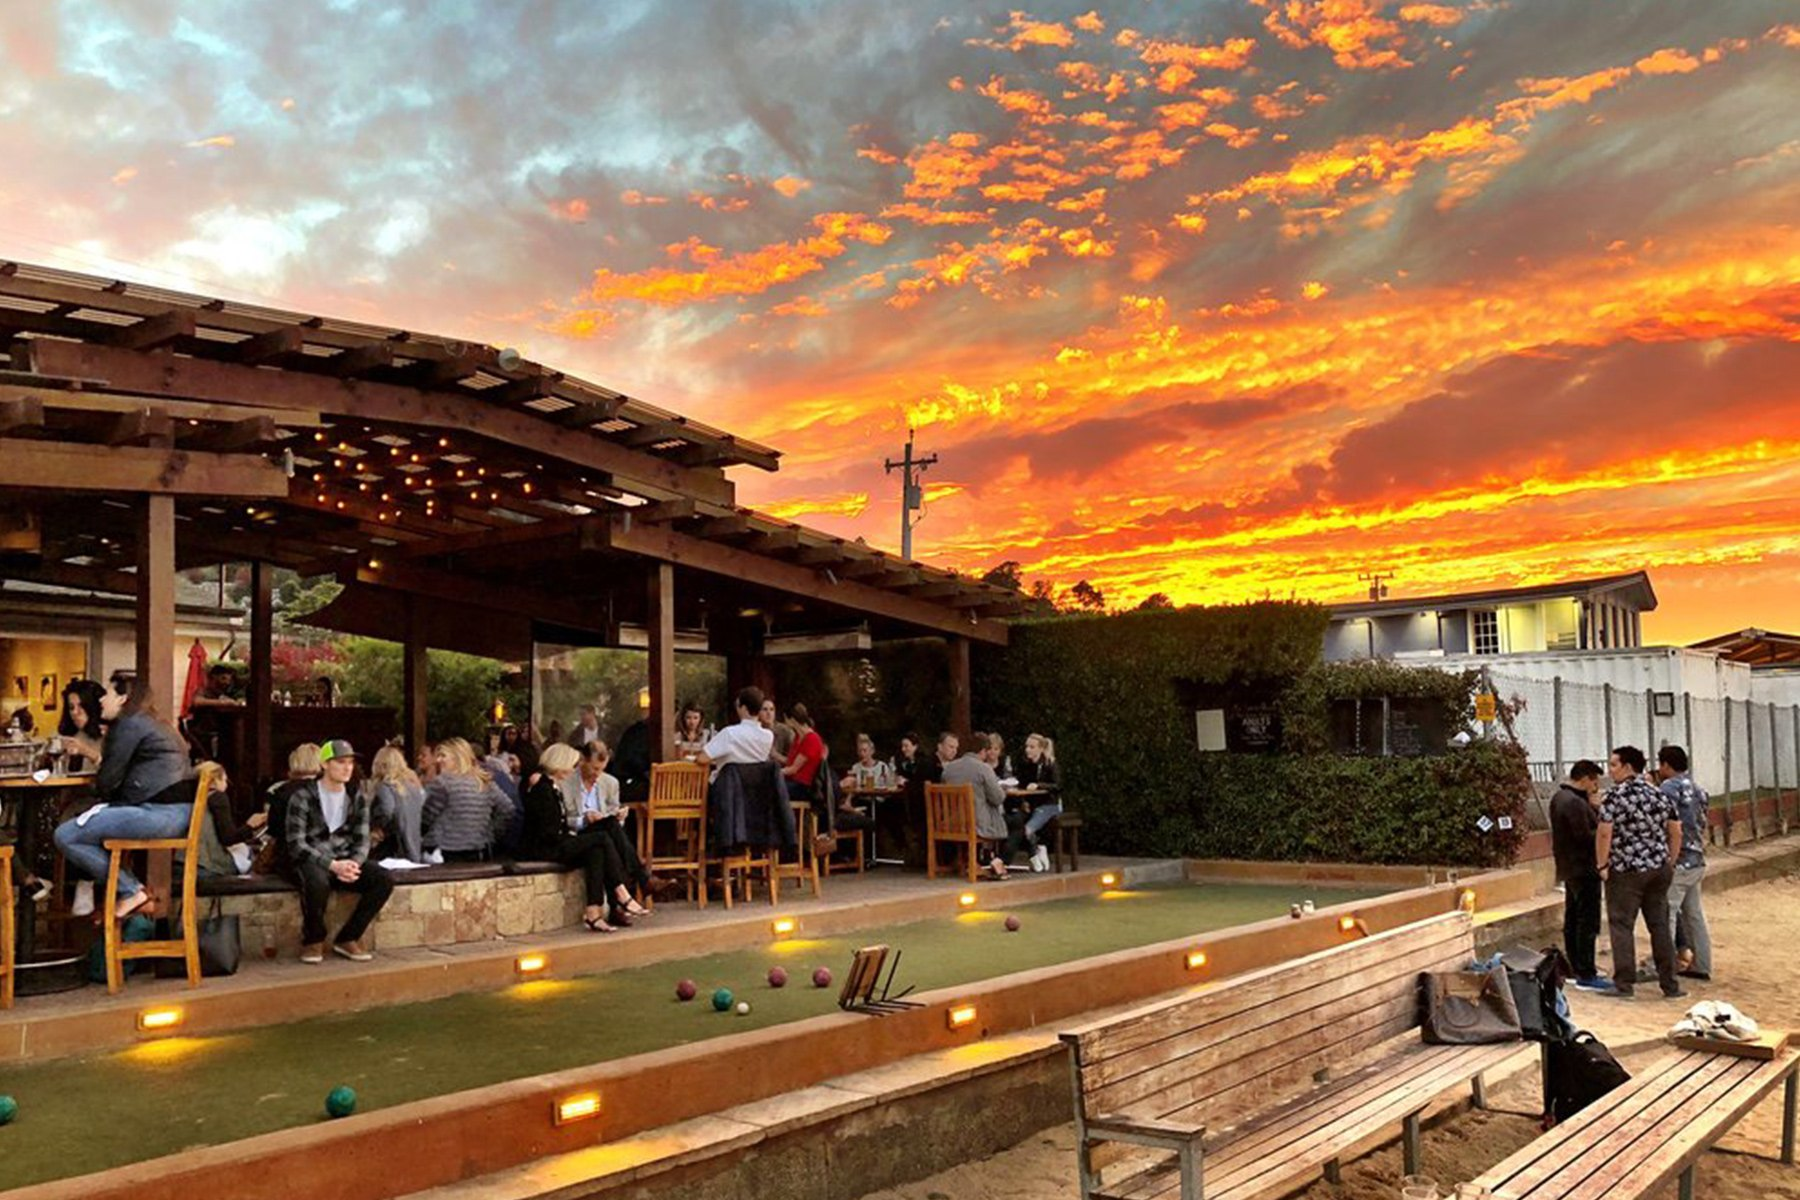 Bar Bocce courts at Sunset